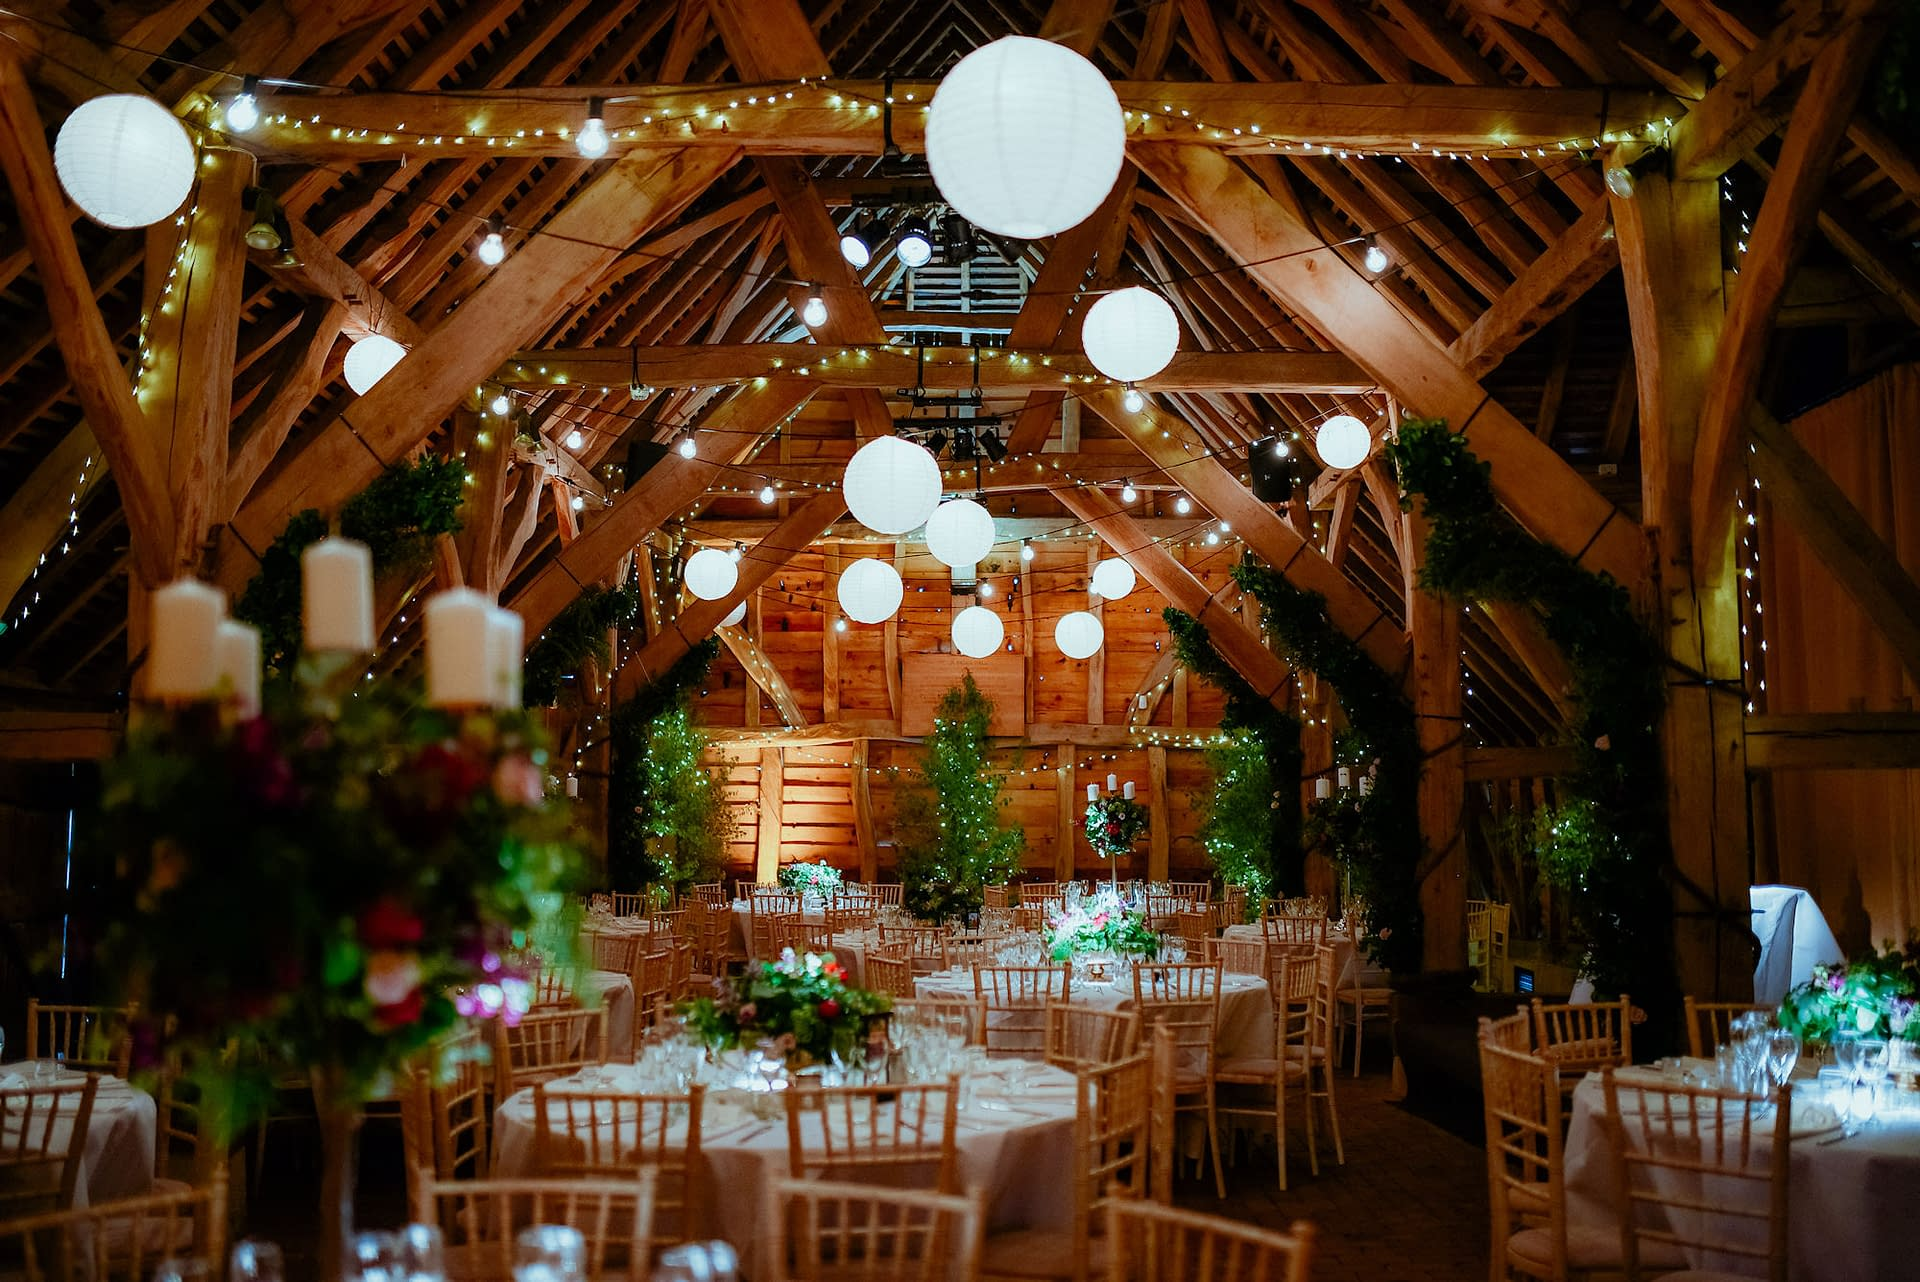 Overhead festoon lights with paper lanterns, birch trees with fairy lights and pinspot lights to the table centres at Gildings Barn, UK wedding venue